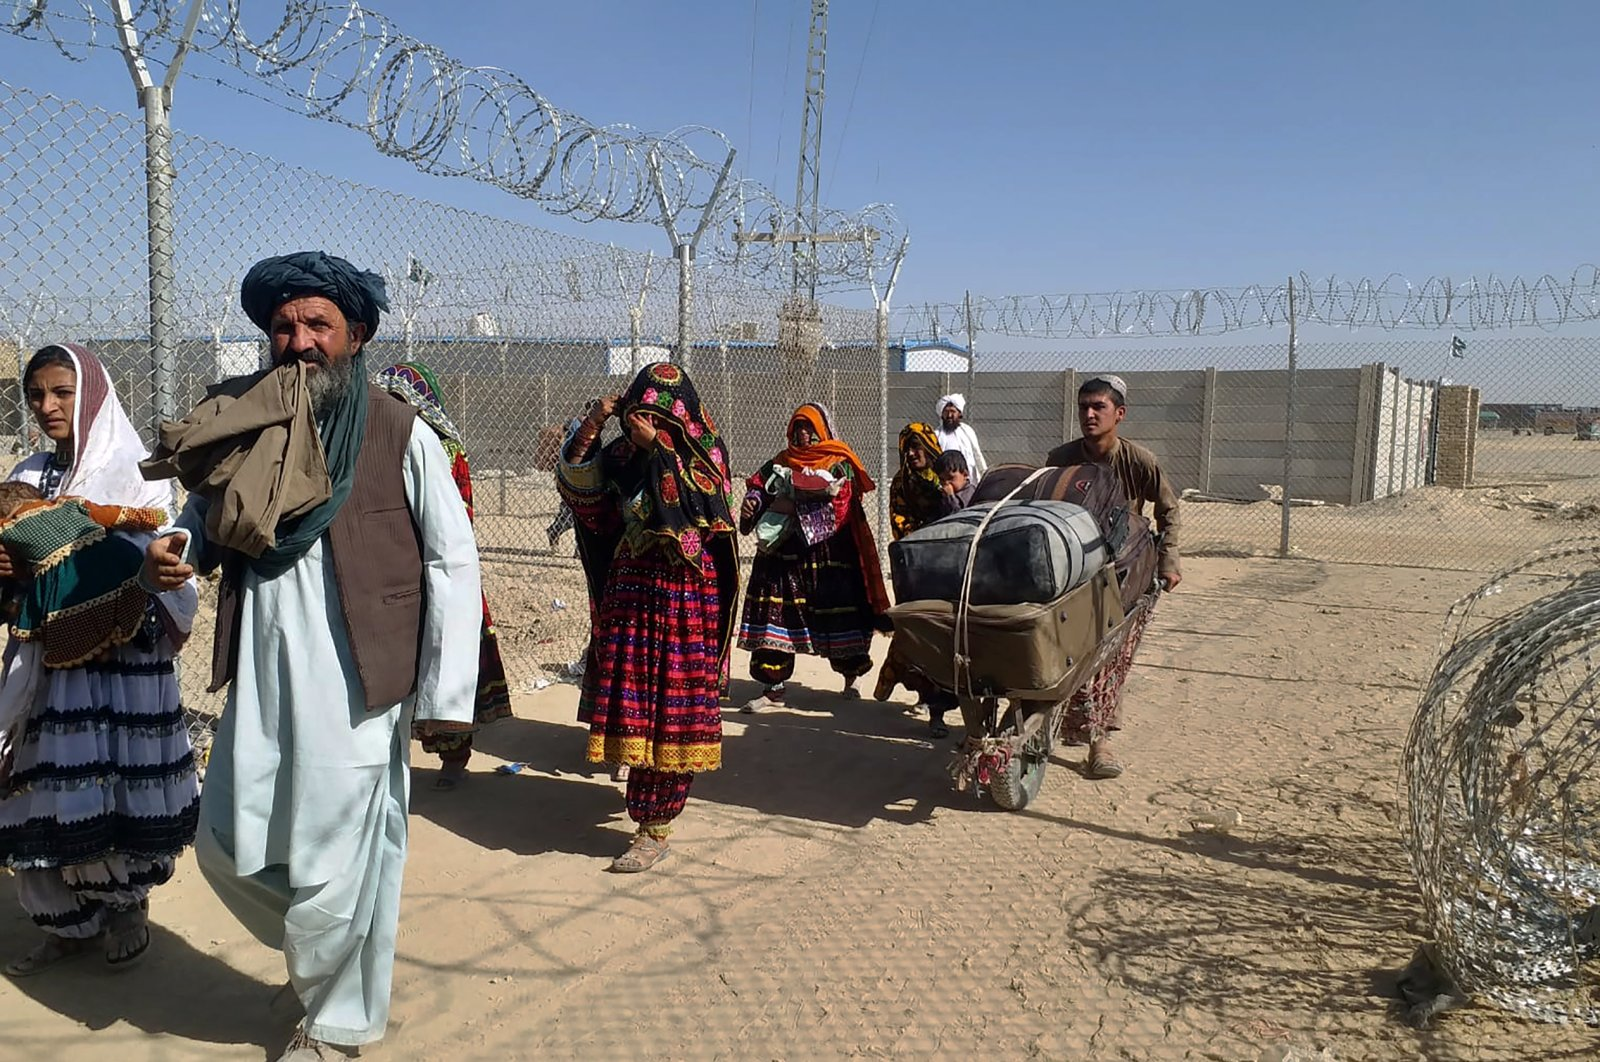 Afghan families enter Pakistan through a border crossing point in Chaman, Pakistan, Sunday, Aug. 22, 2021. (AP Photo)